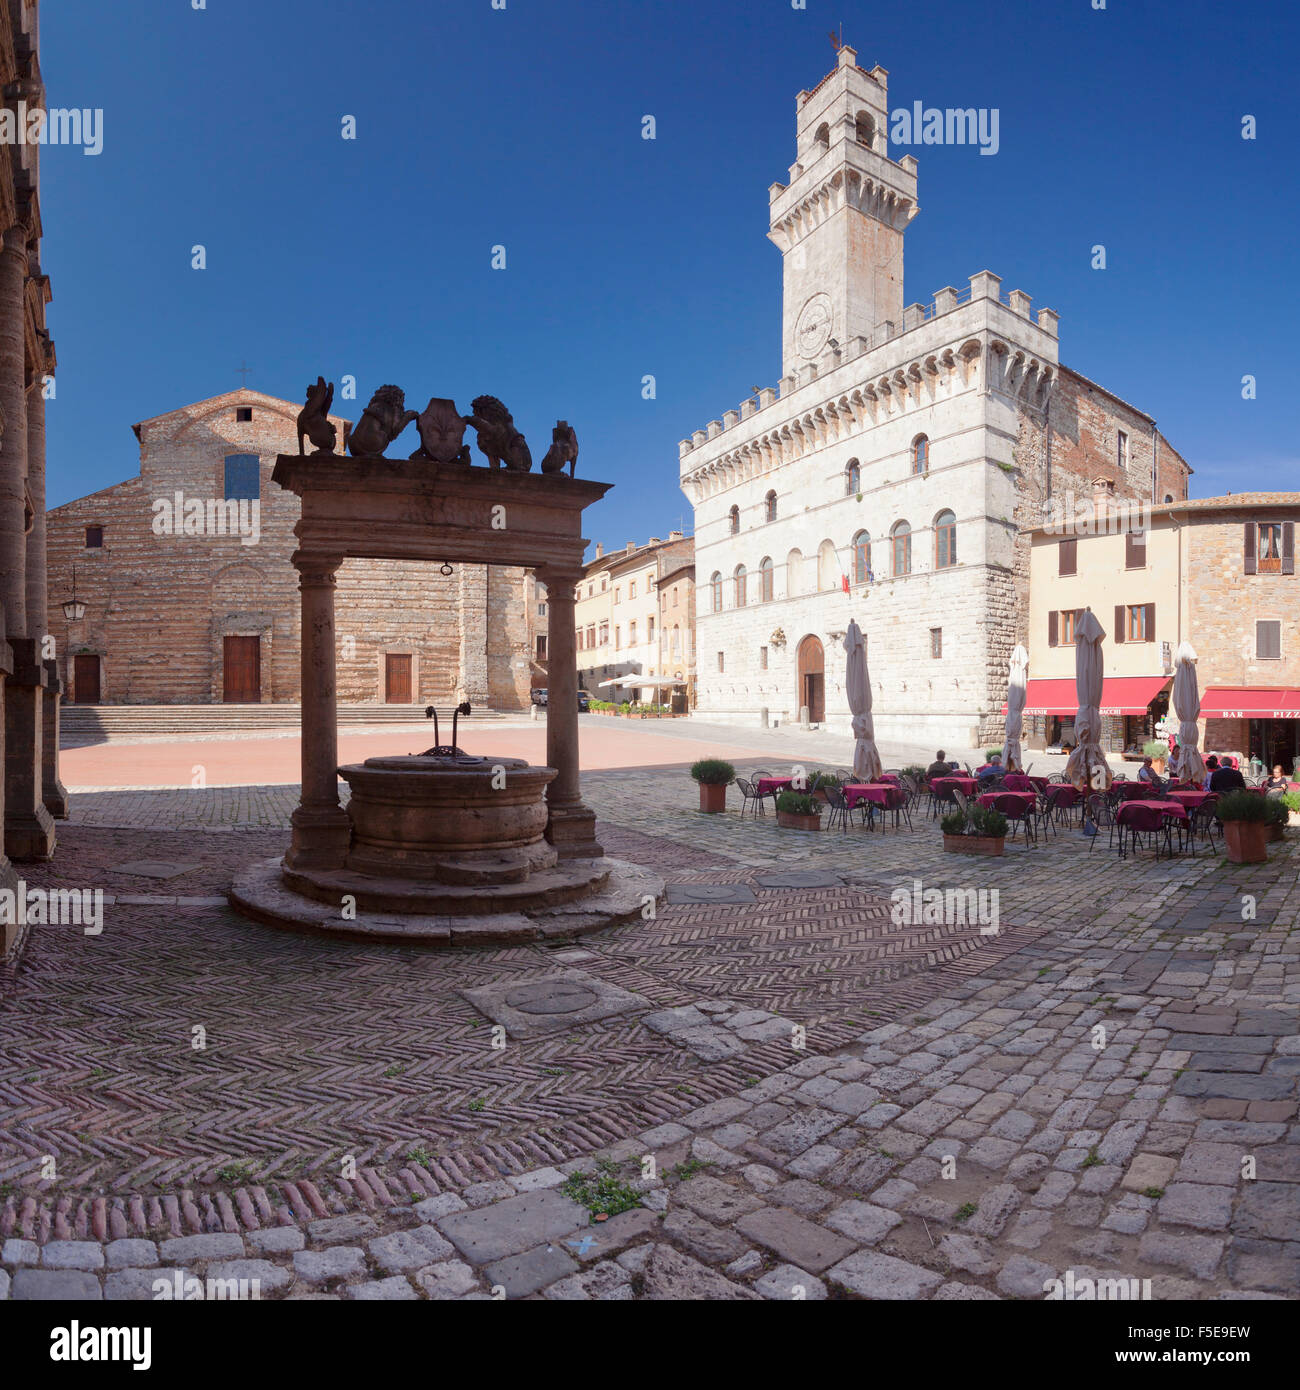 Piazza Grande Square and Palazzo Contuzzi, street cafe, Montepulciano, Siena Province, Tuscany, Italy, Europe - Stock Image